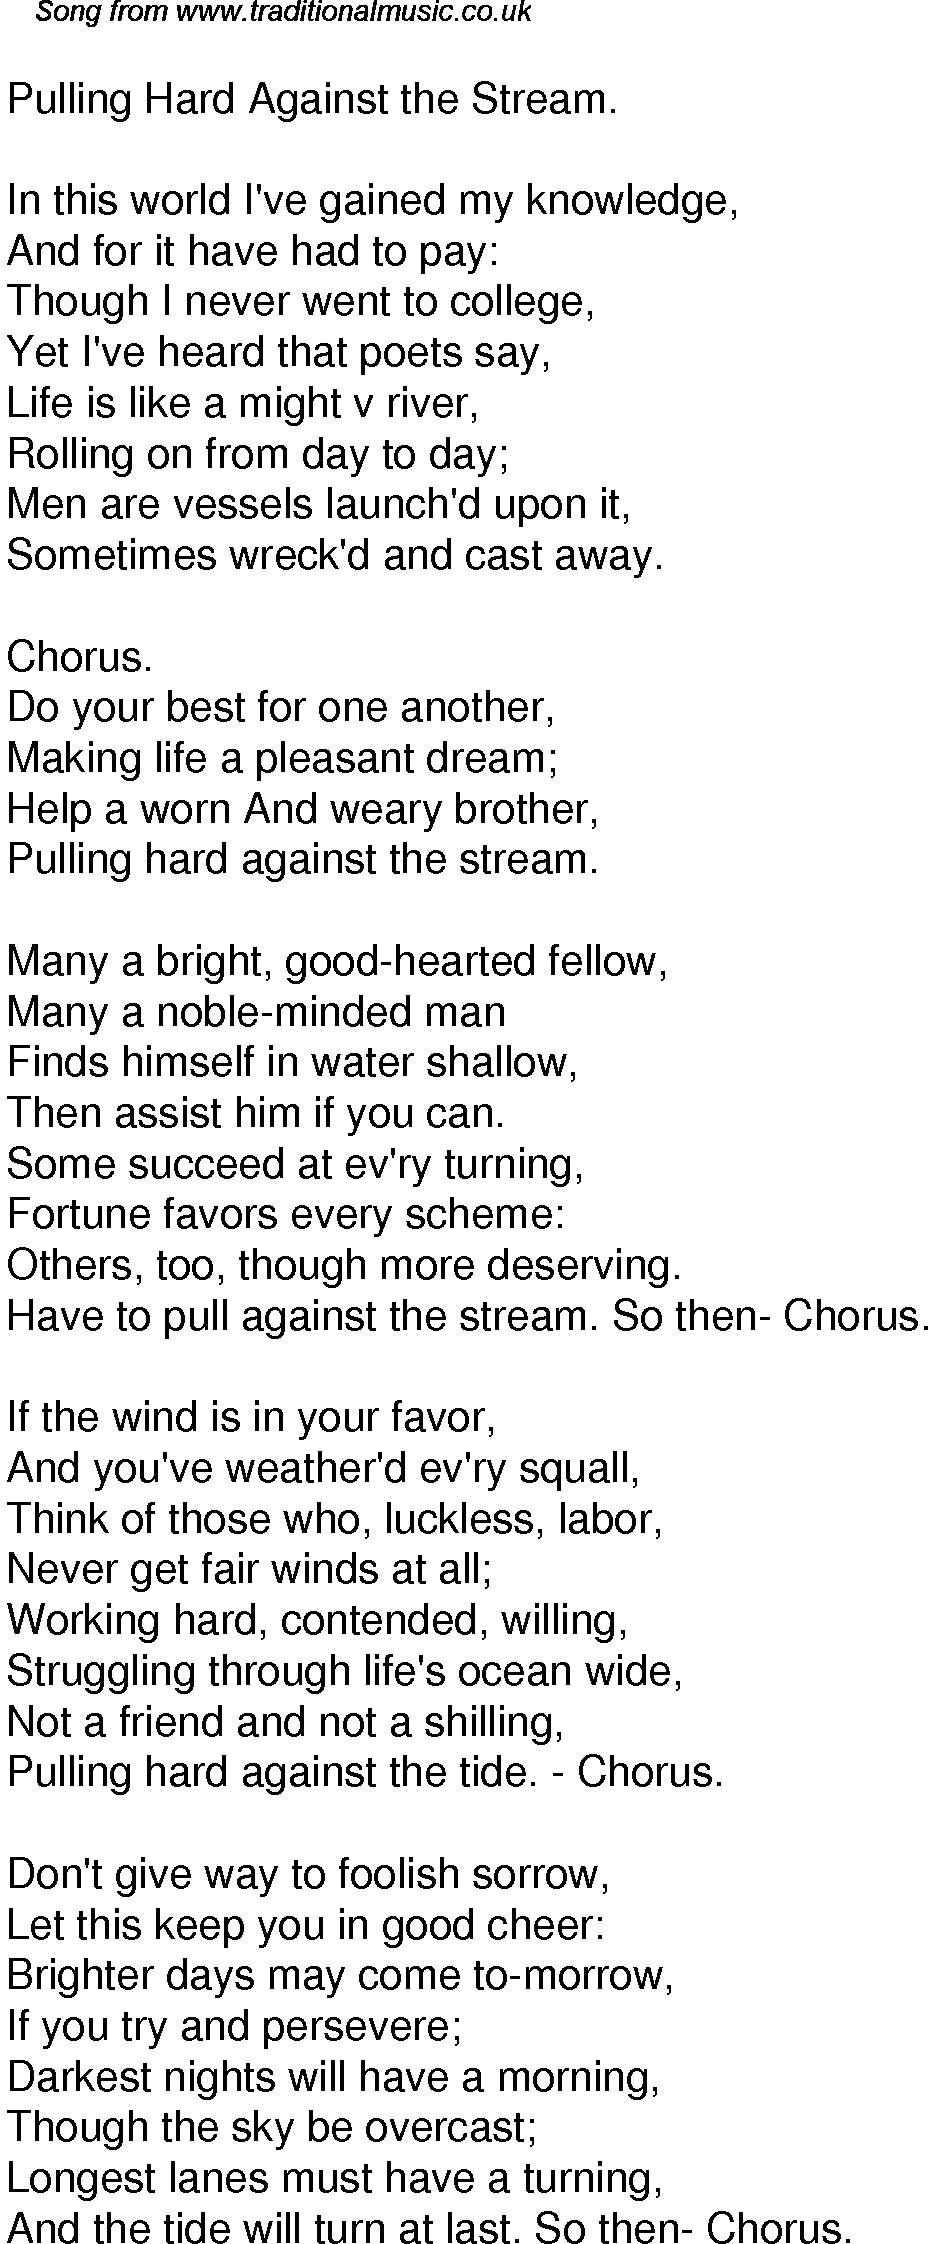 Old Time Song Lyrics for 49 Pulling Hard Against The Stream